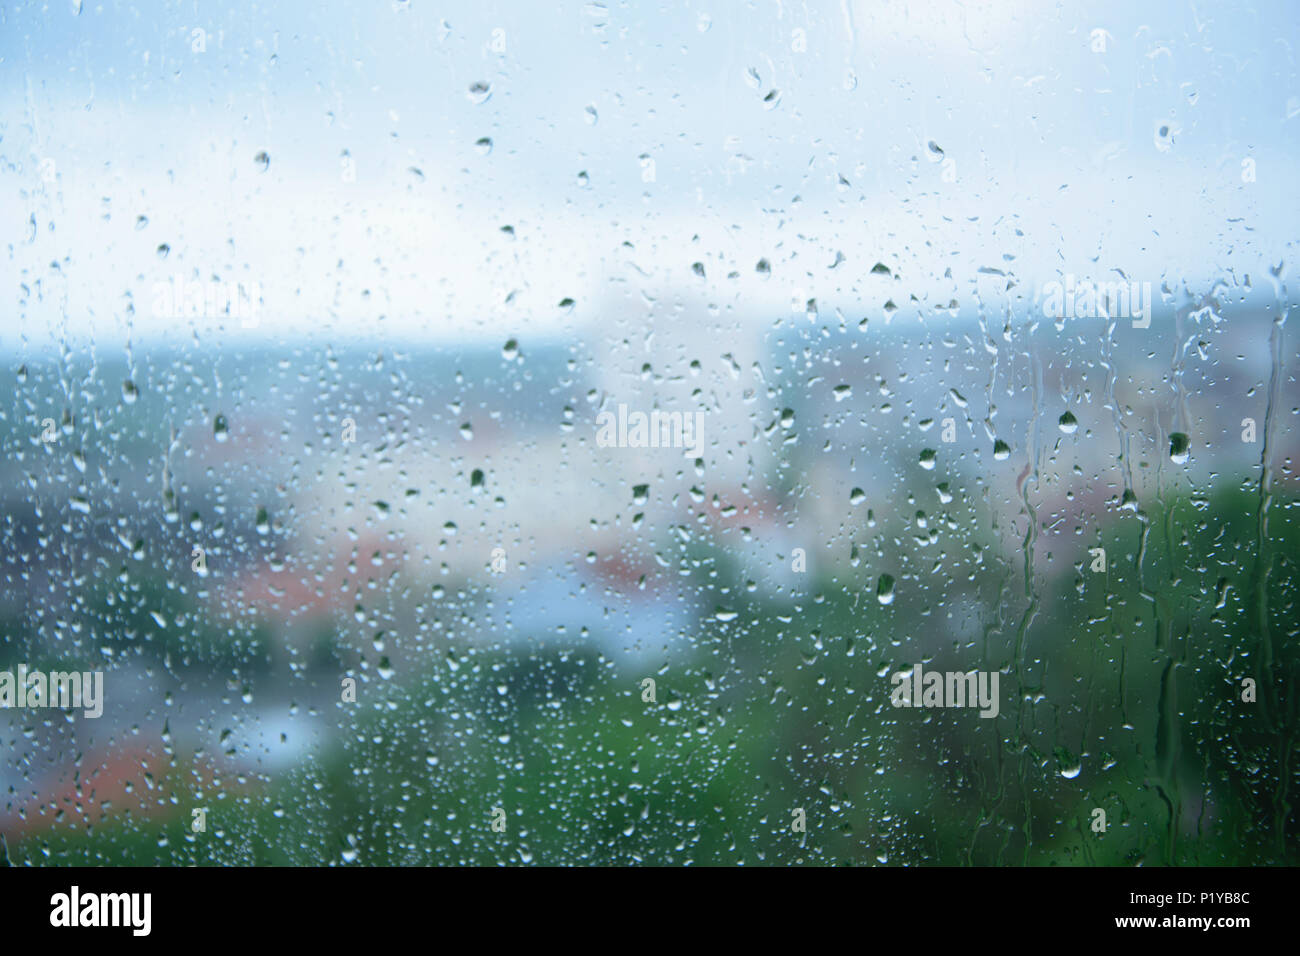 Rainy days - raindrops on the window, the city park blurred in the background - Stock Image